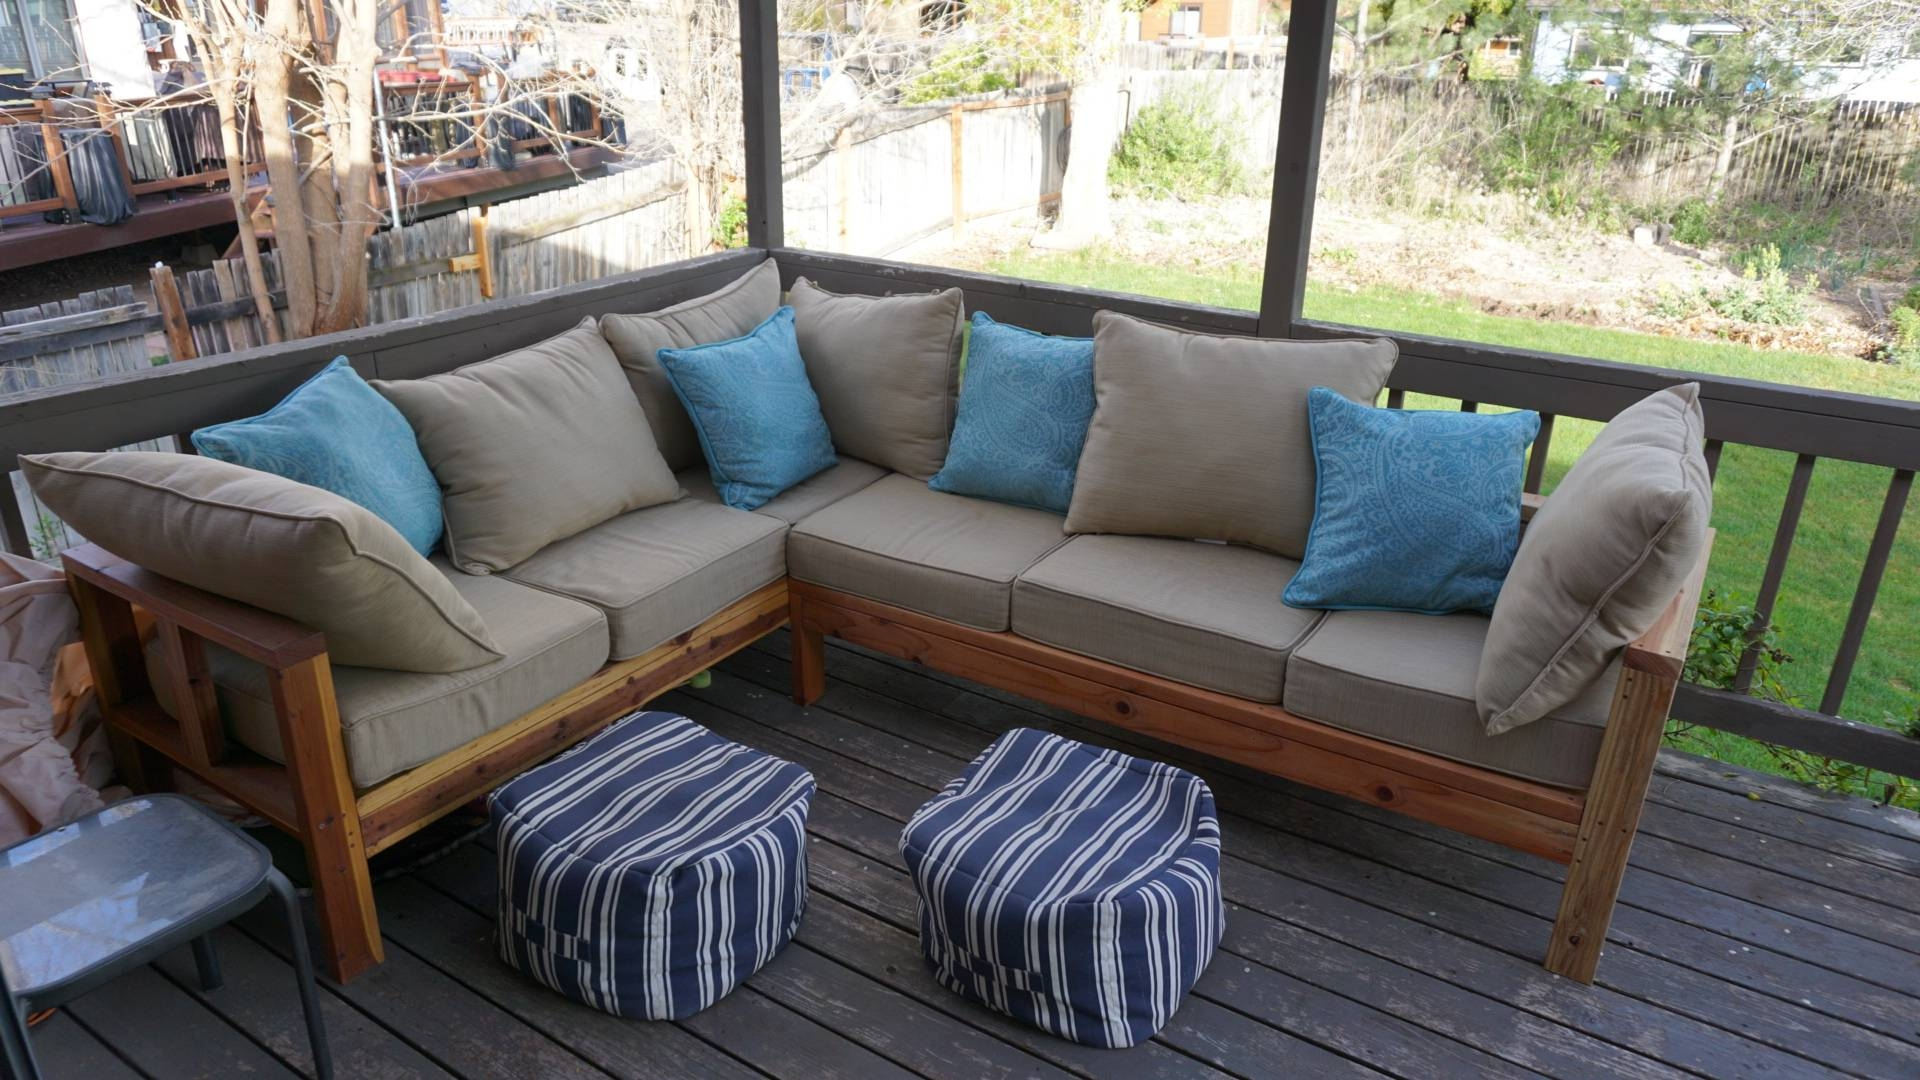 Ana White | Outdoor Sectional Couch - Diy Projects pertaining to Ana White Outdoor Sectional Sofas (Image 8 of 15)